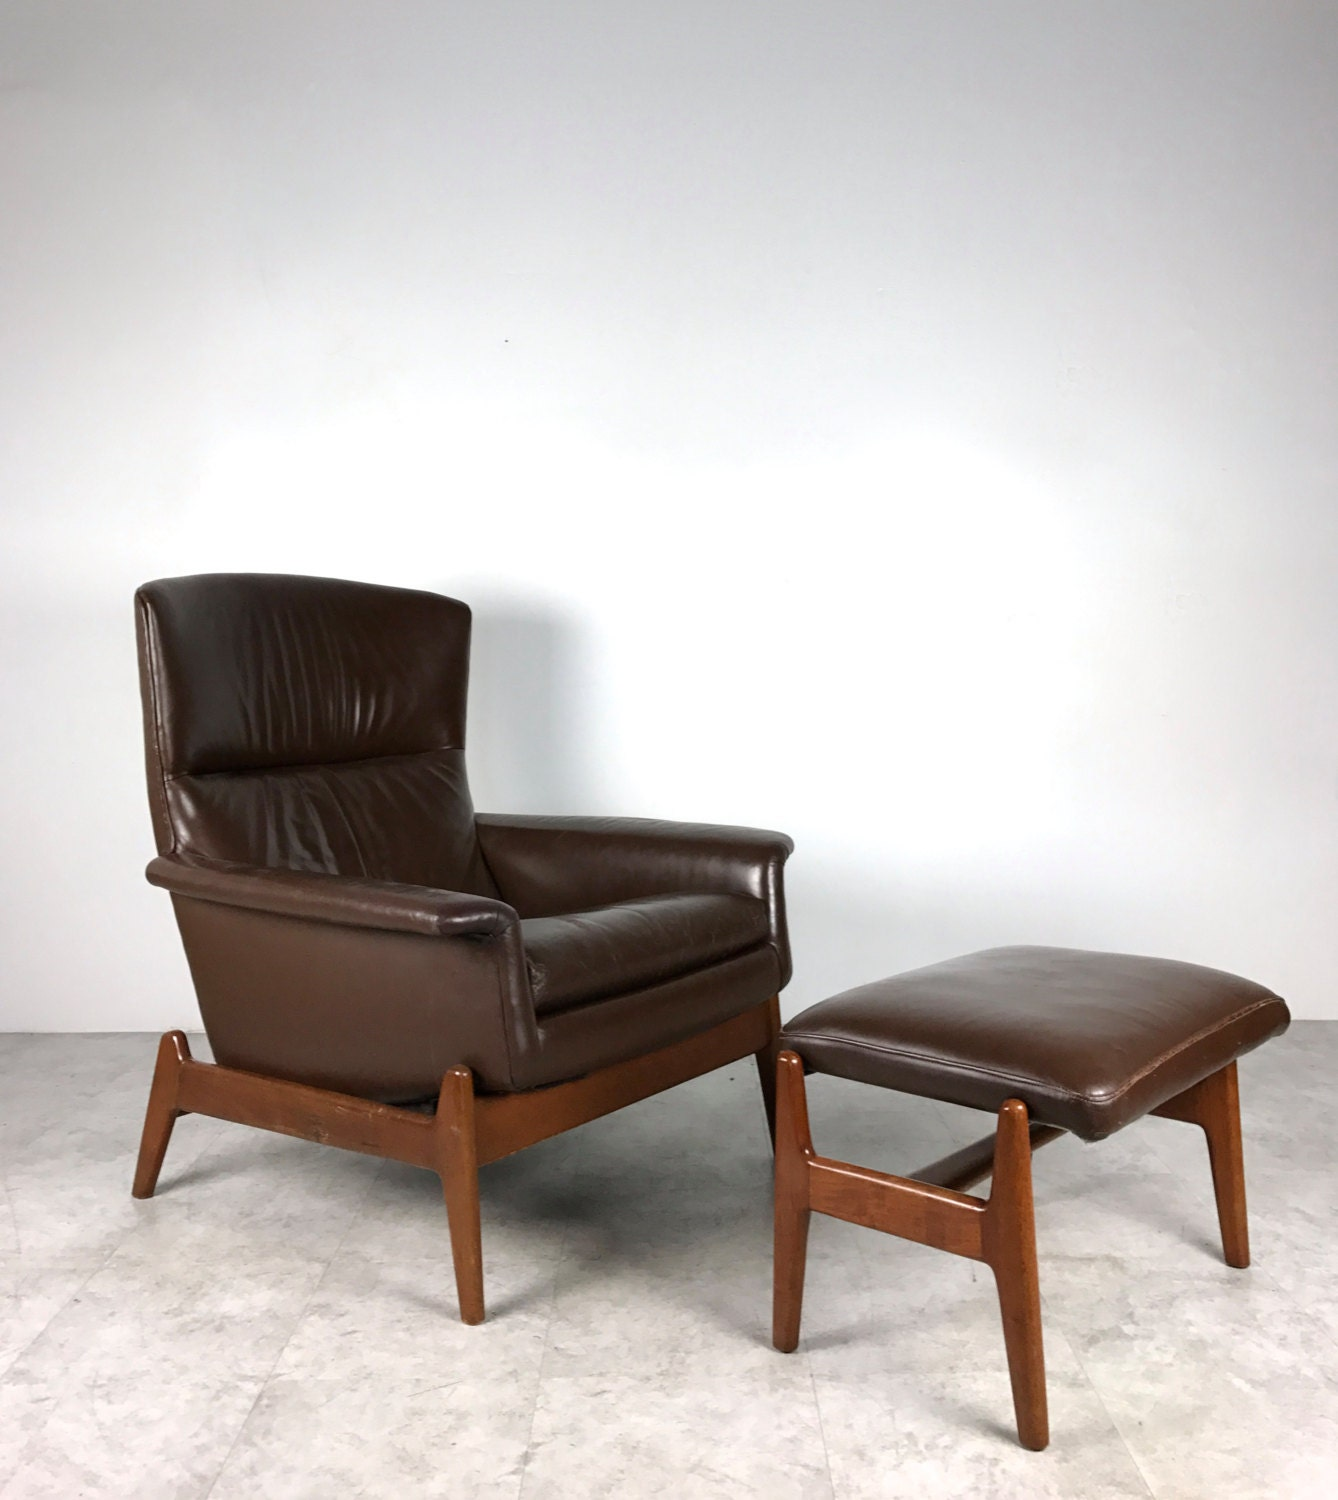 Inspirational mid century modern lounge chair for Danish modern reproduction